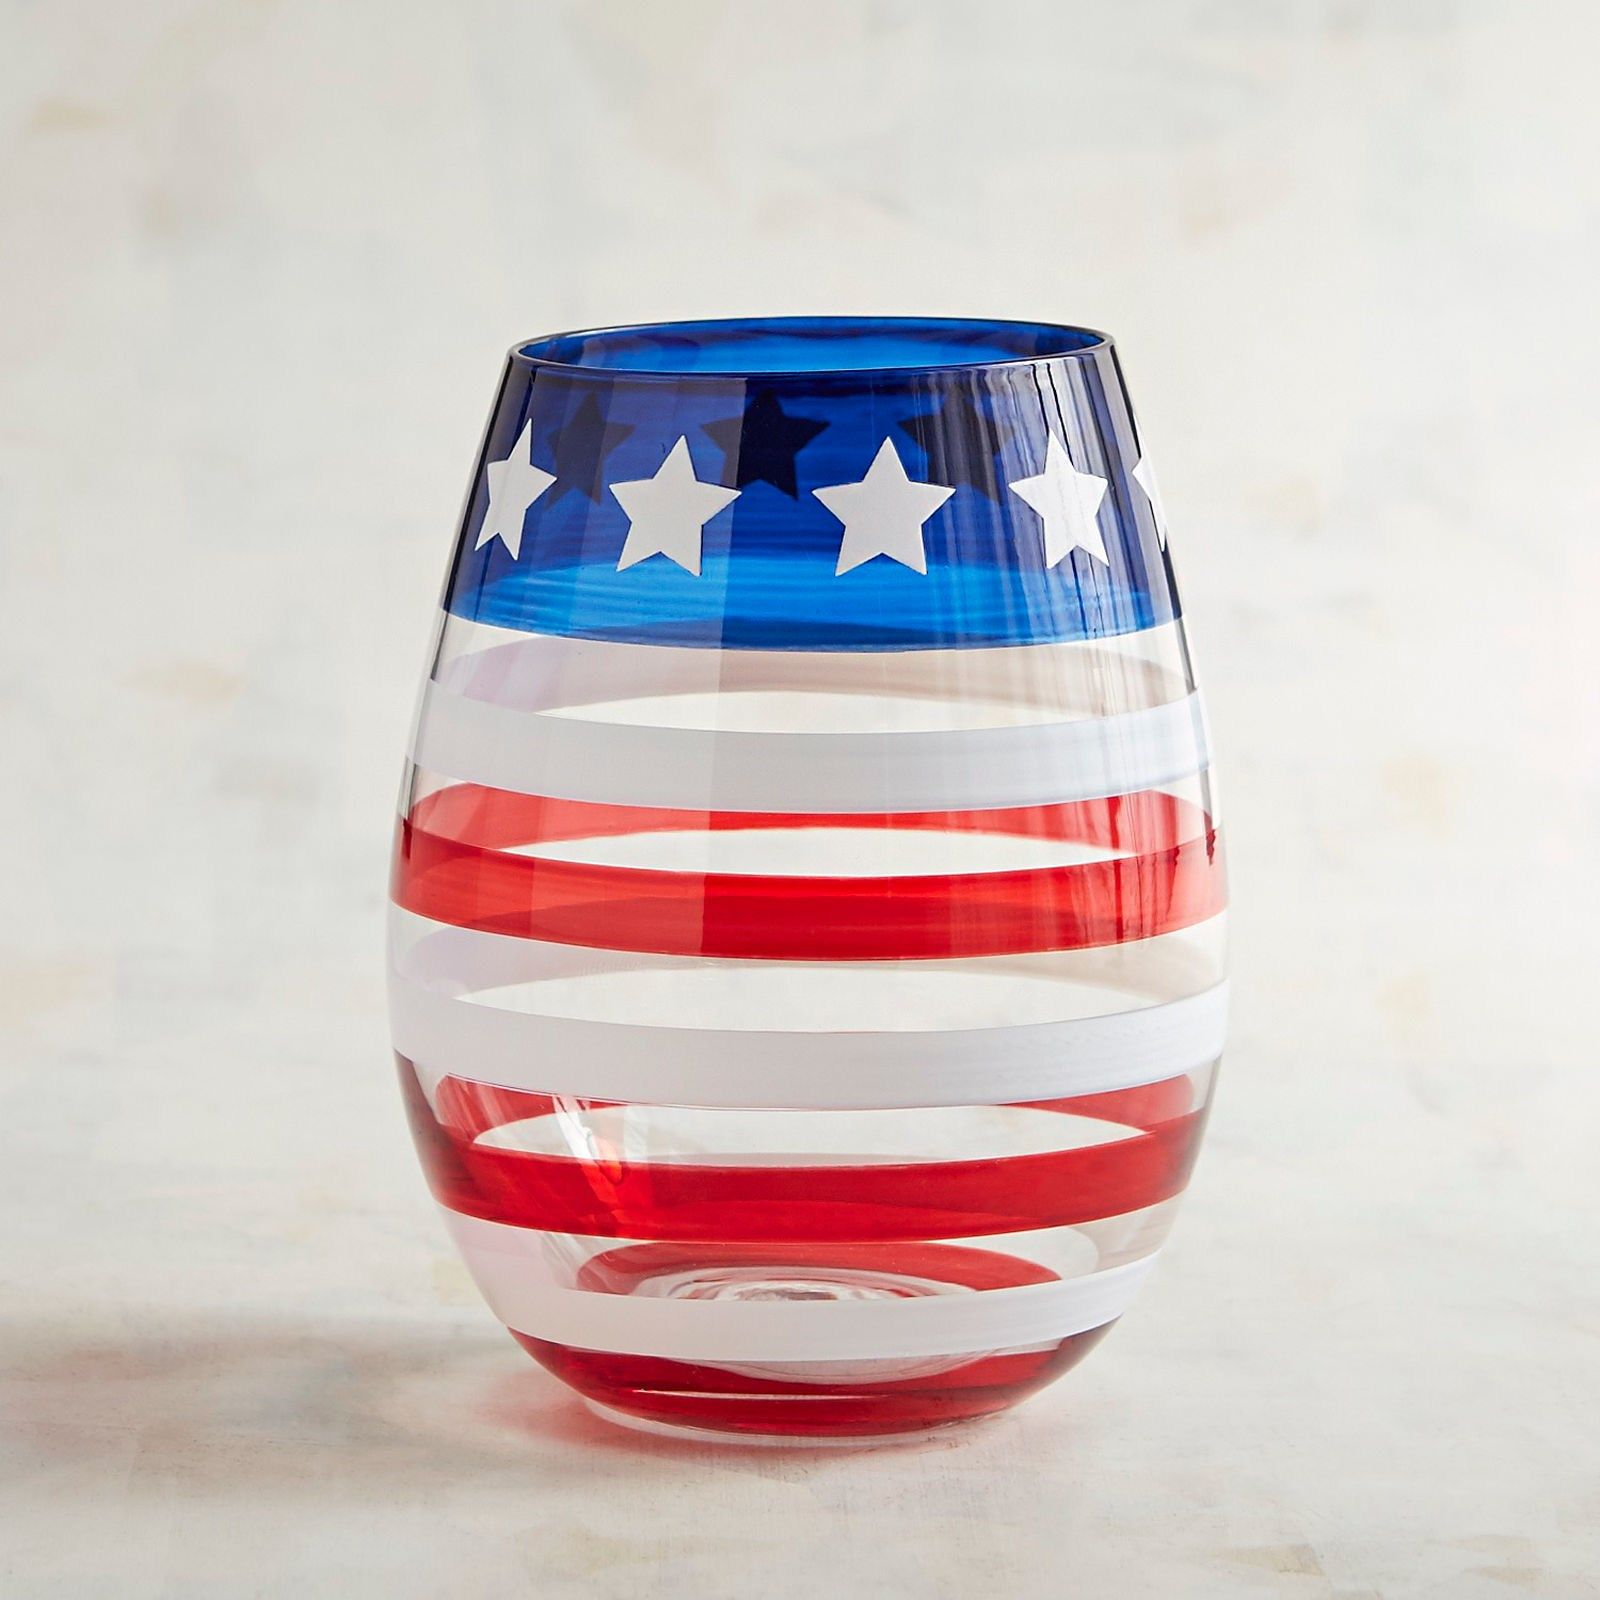 Red White And Blue Stemless Wine Glass Perfect For Your Memorial Day Or 4th Of July Festivities Stemless Wine Glasses Diy Unique Wine Glasses Diy Wine Glasses